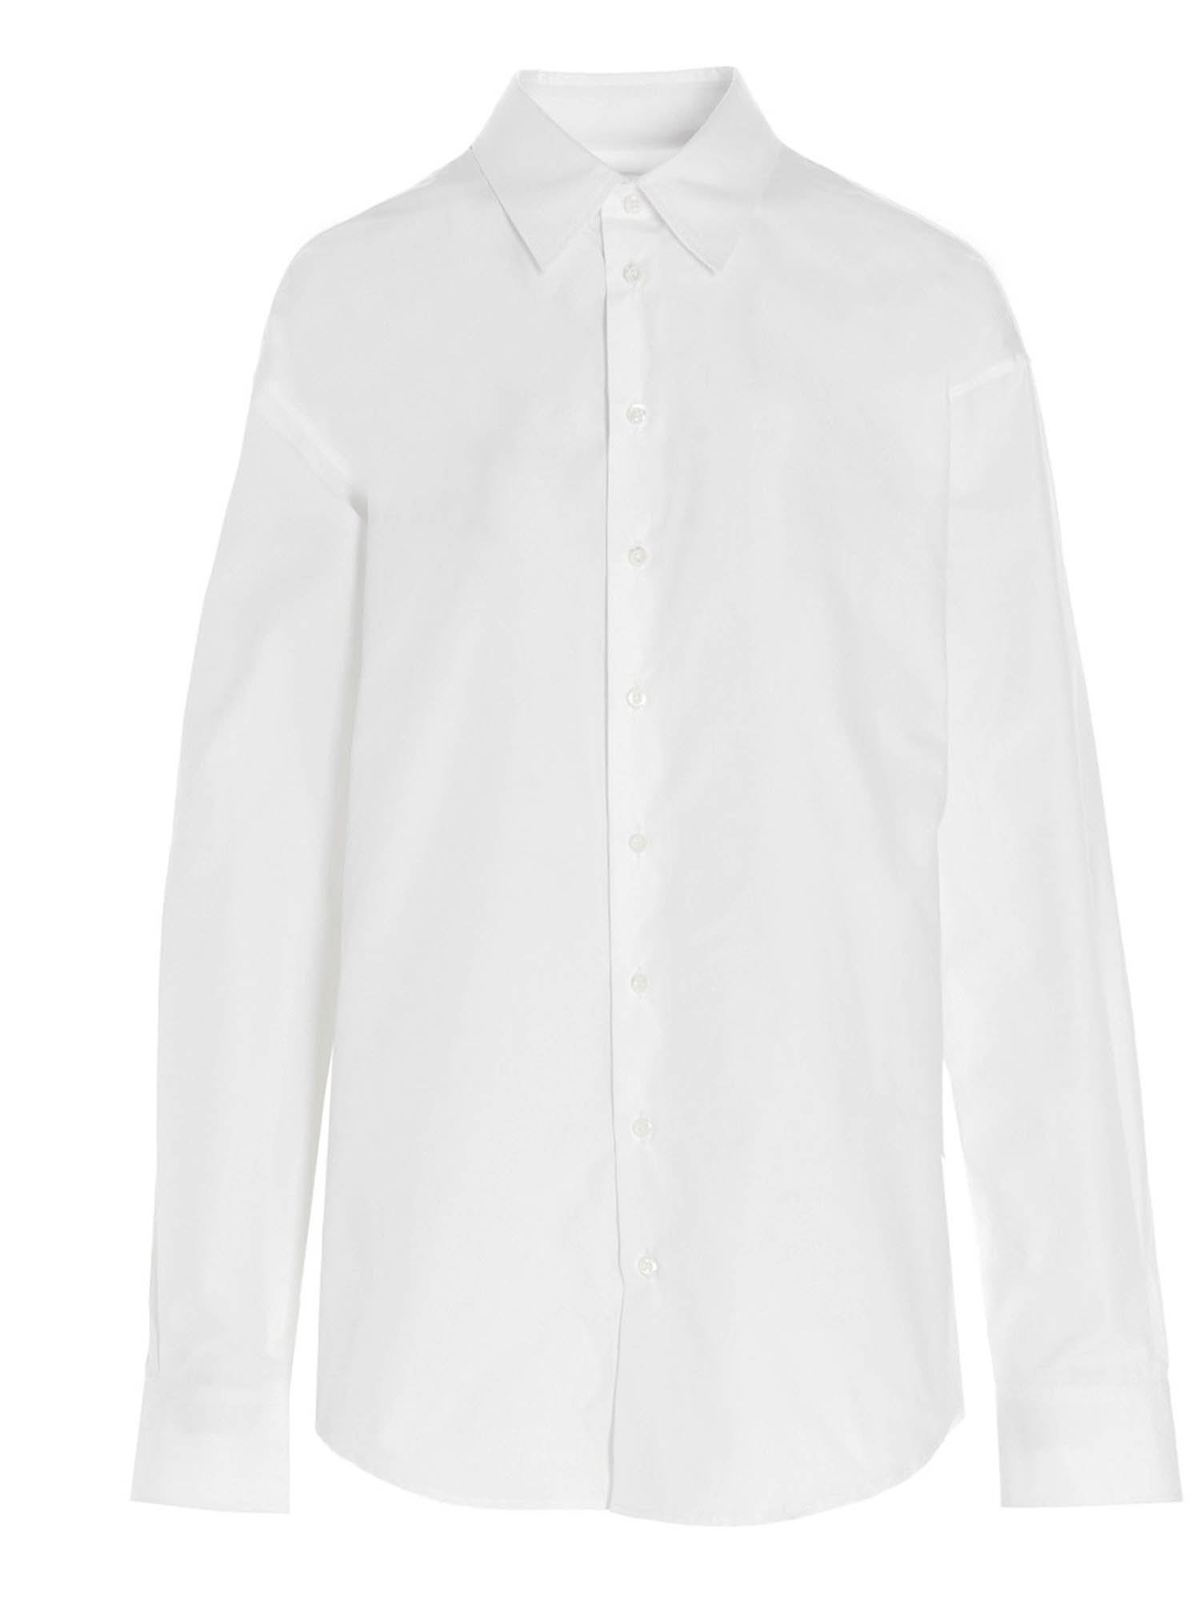 Dsquared2 CLASSIC OVERSIZED SHIRT IN WHITE